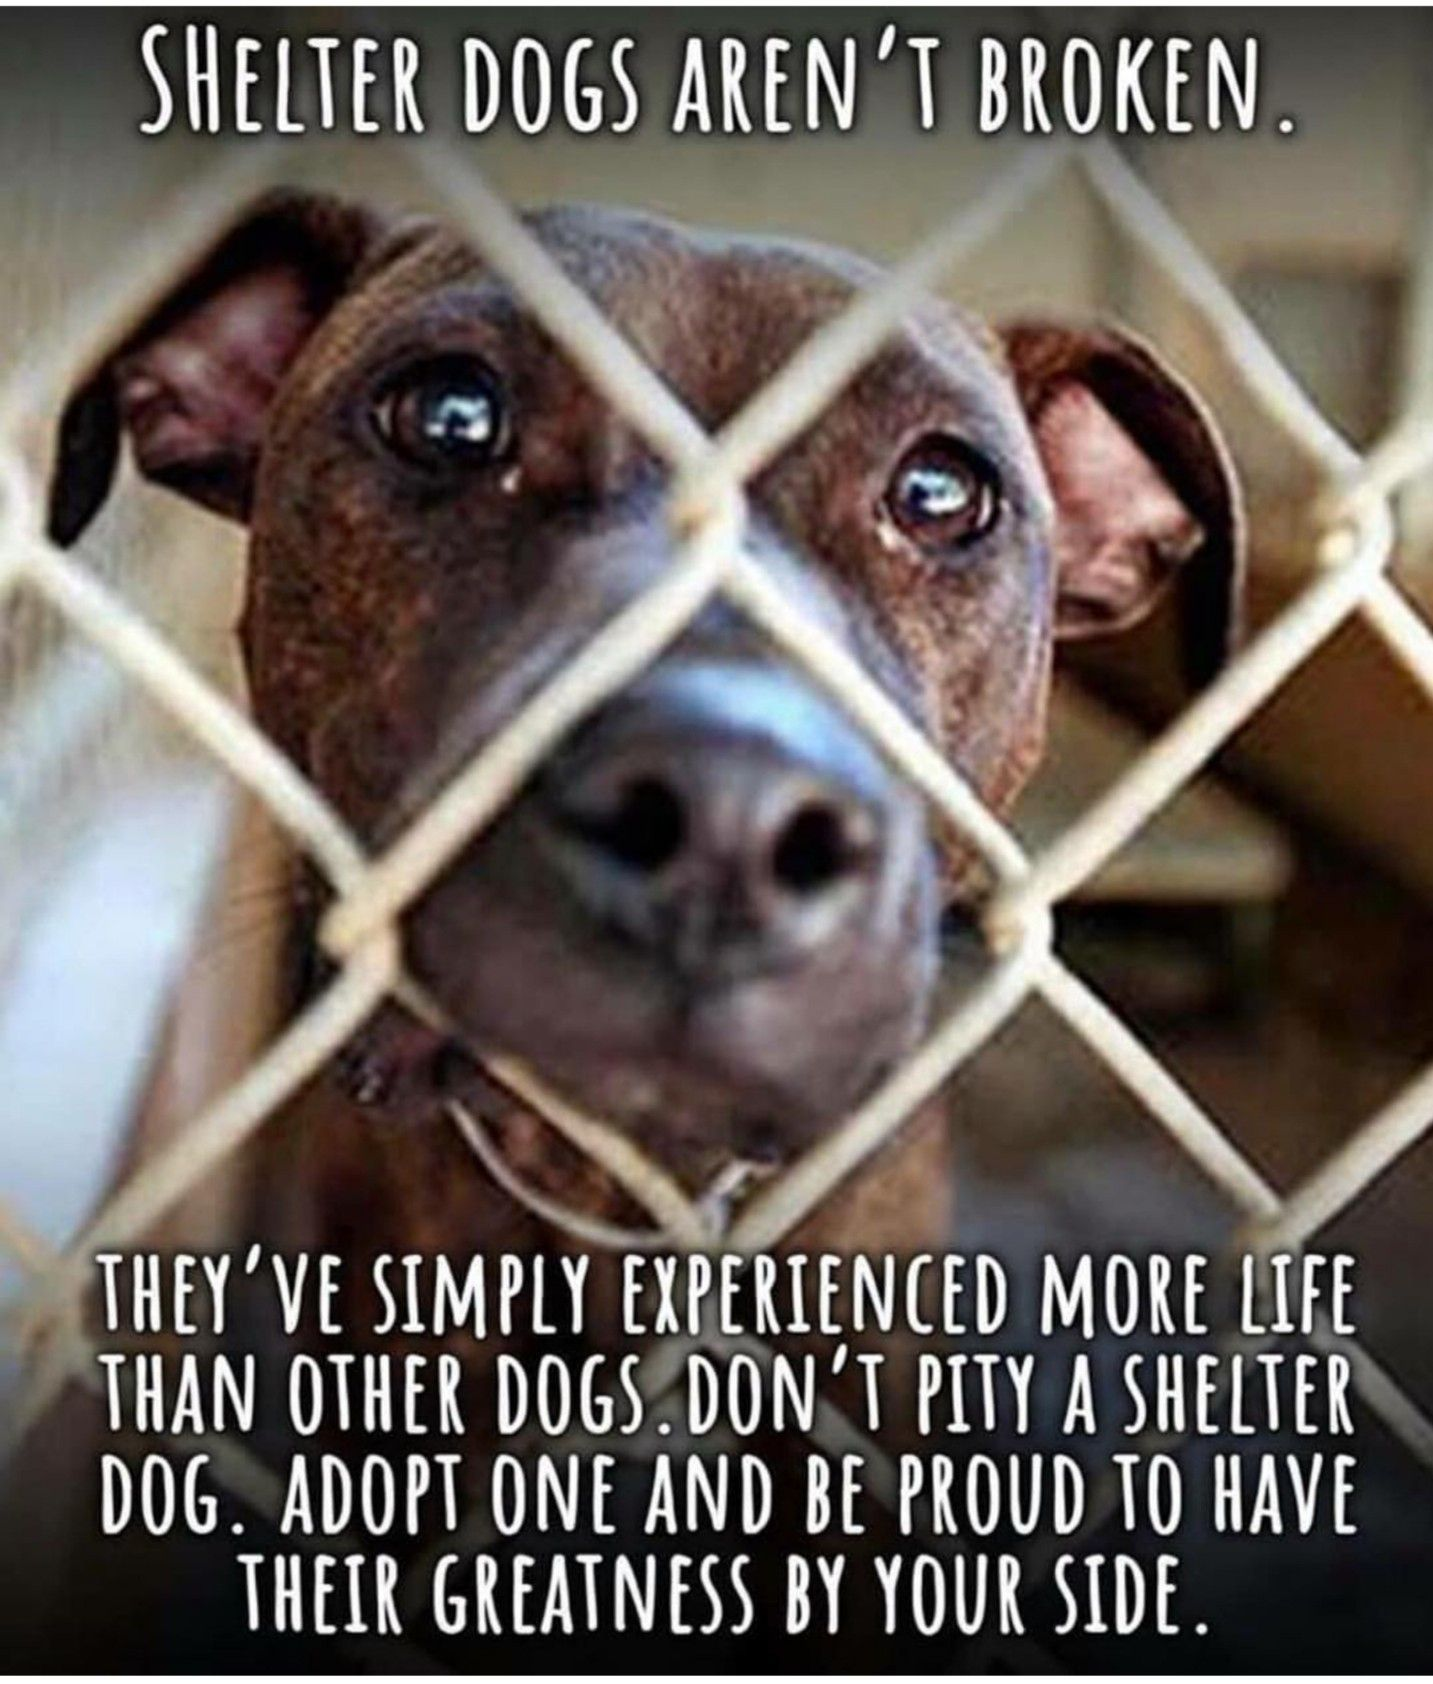 Pin By Mel07 On Animal Advocacy Dog Adoption Dogs Shelter Dogs